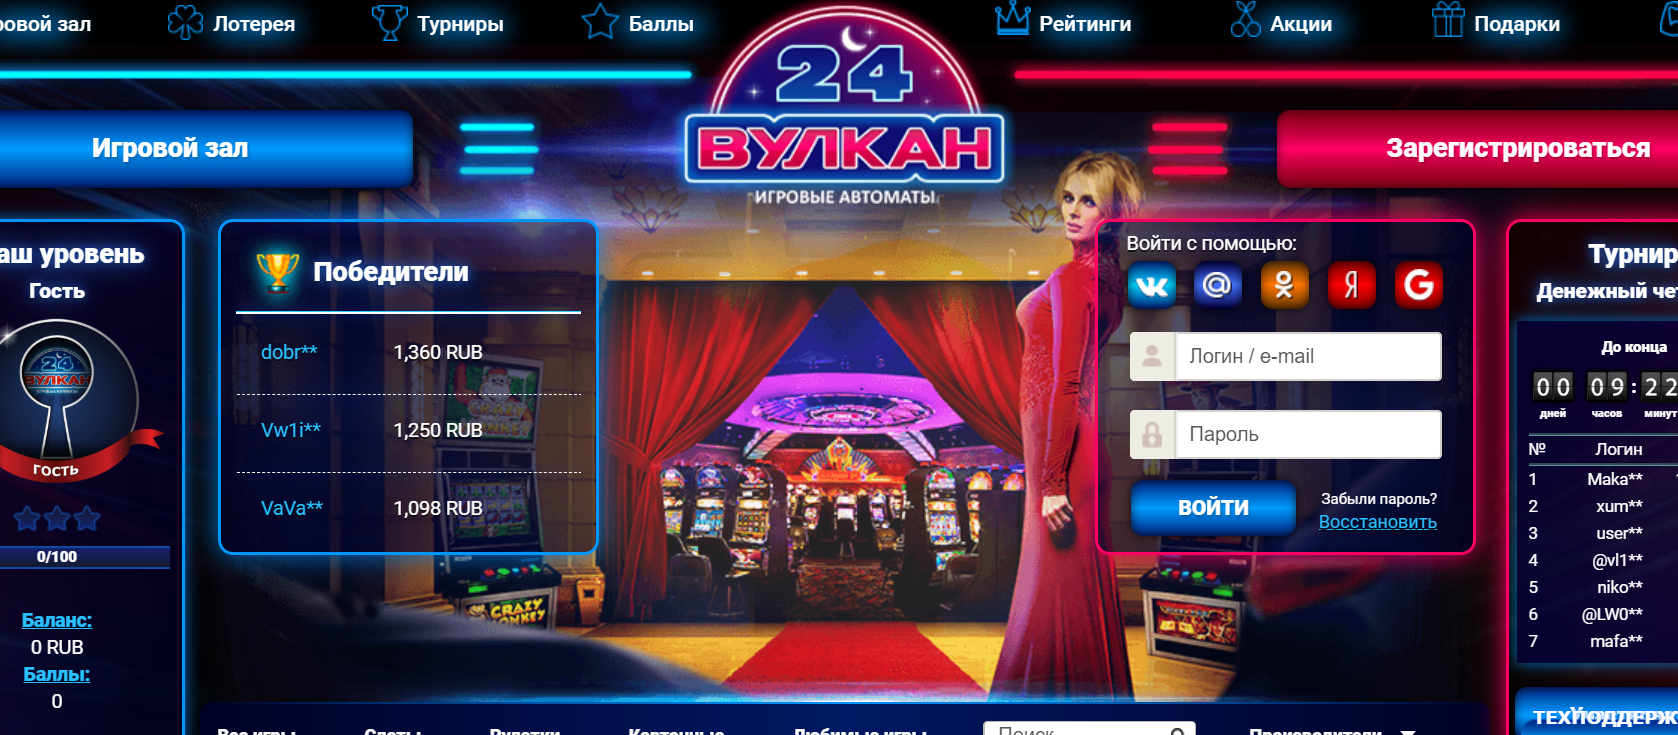 Titan poker бонусы app android download